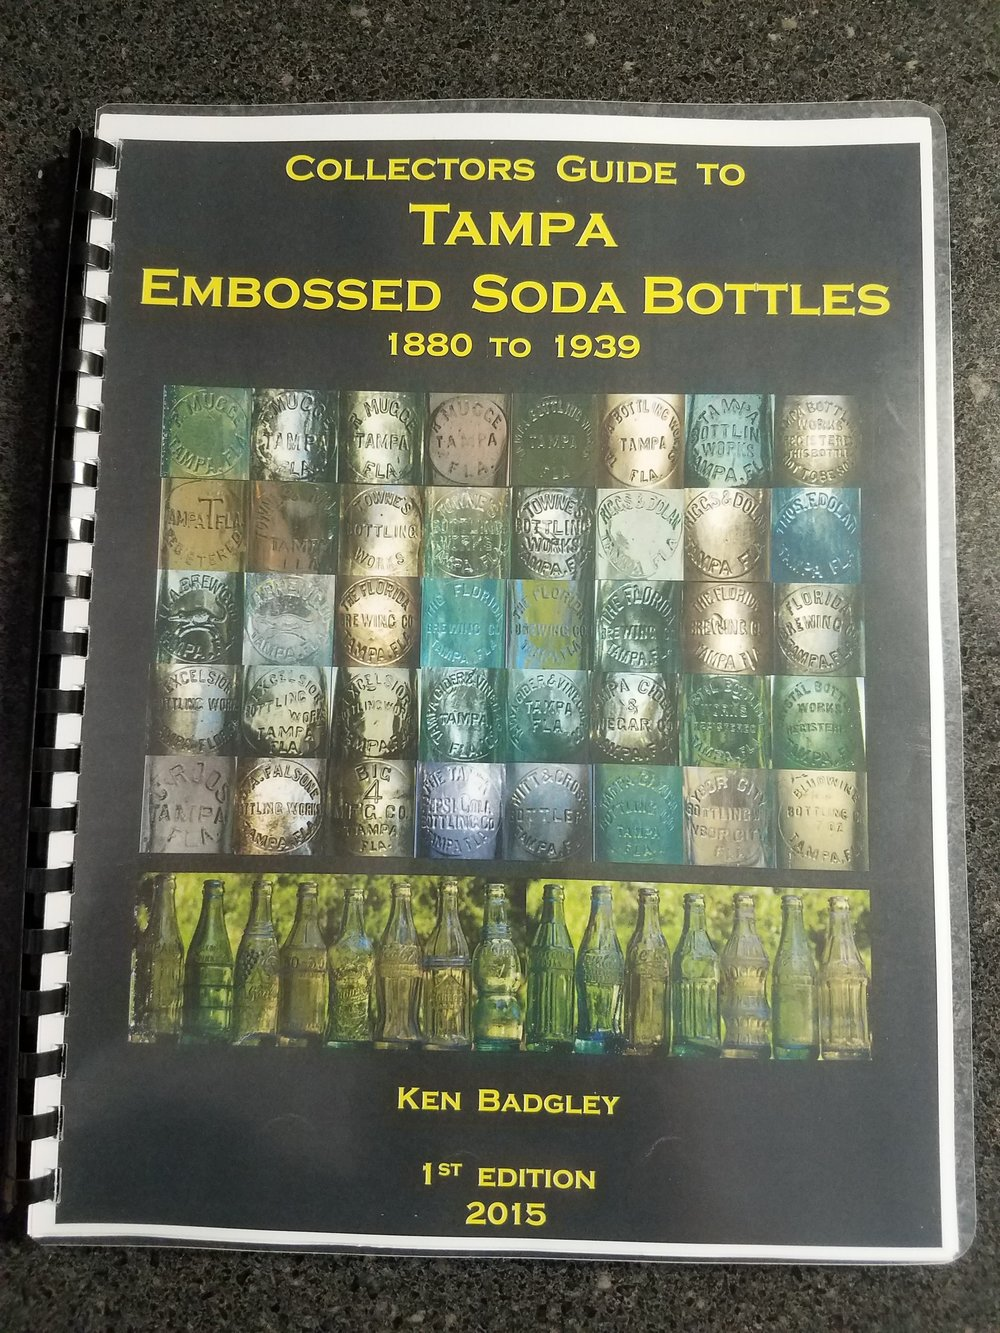 Collectors Guide to Tampa Embossed Soda Bottles - 1st Edition, Ken Badgley 2015Had the pleasure of meeting Ken and got a issue of this limited guide. Great pictures and historical data of early Tampa bottles which had to take tons of time to put together. Thanks again Ken!